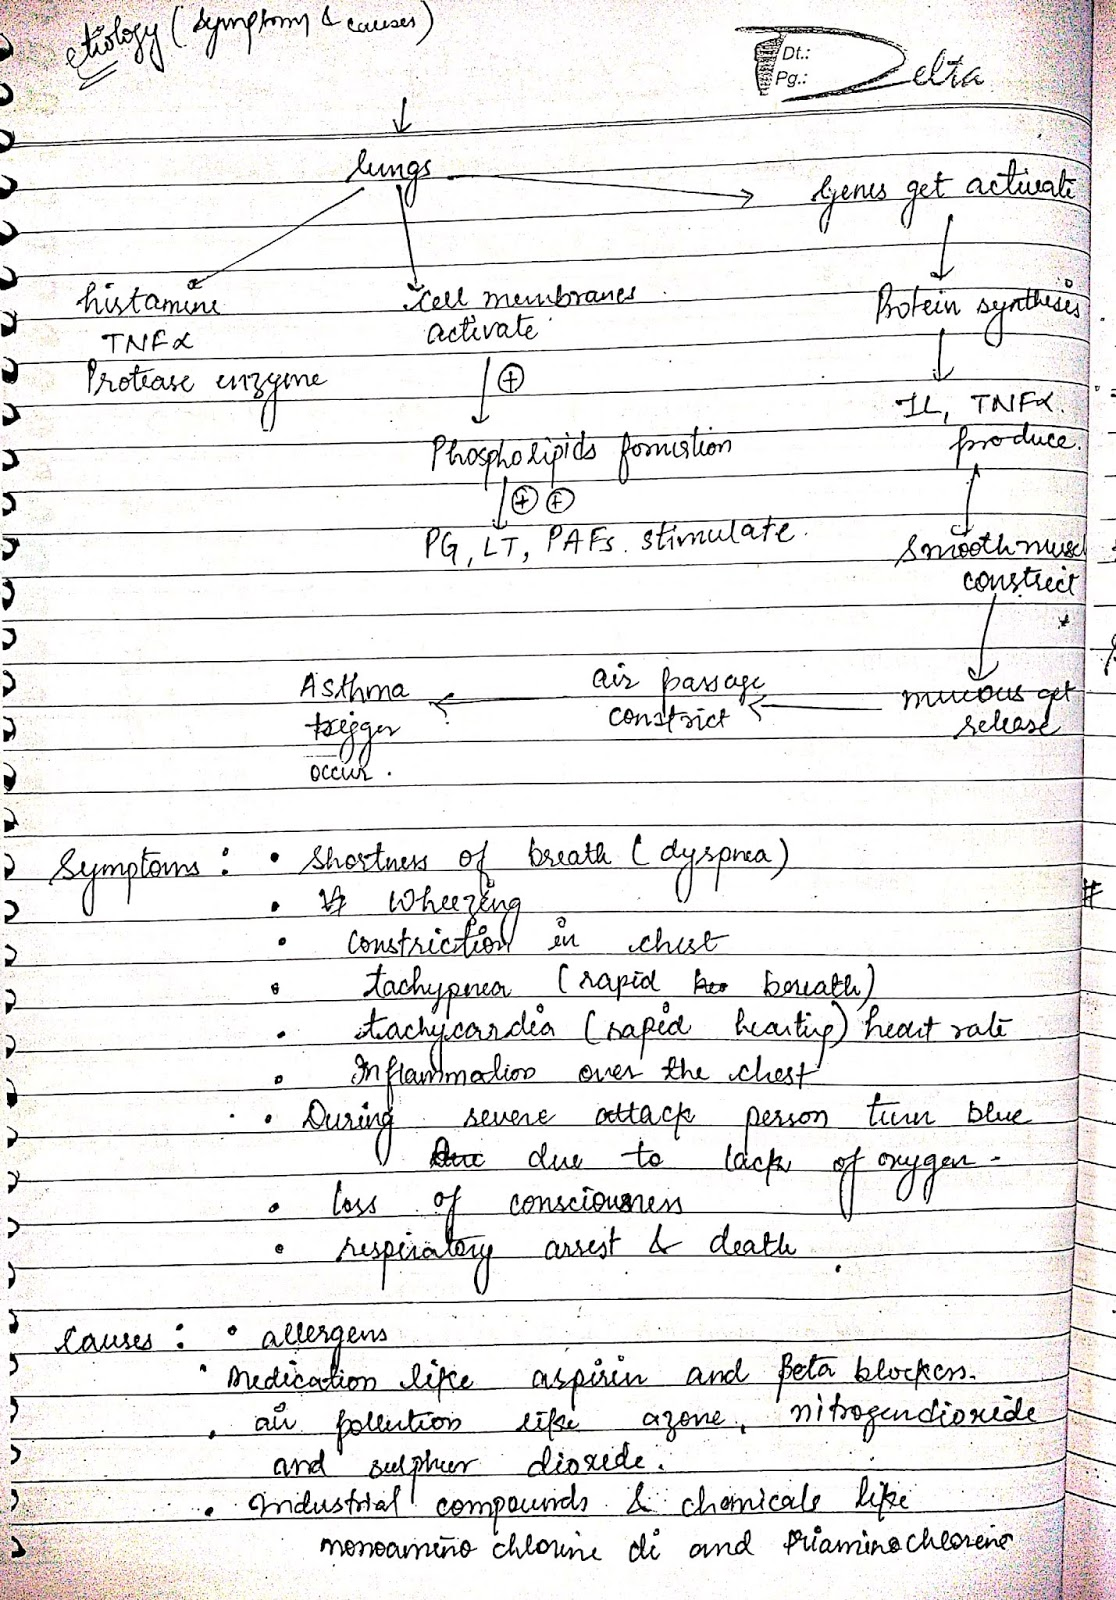 pathophysiology - lung disorders asthma